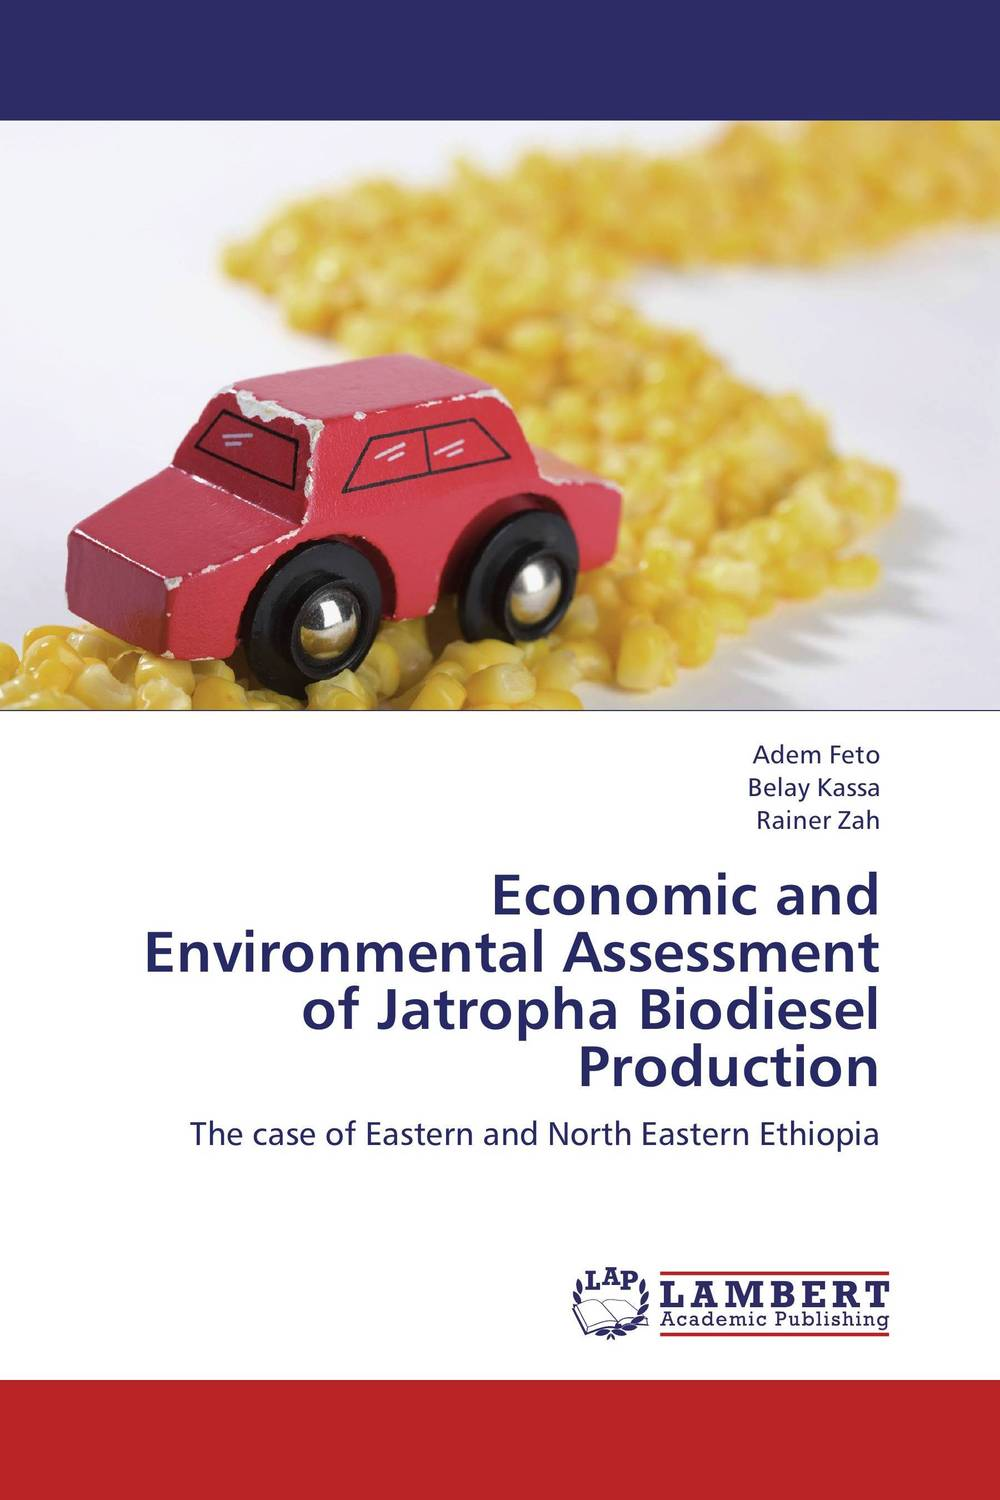 Economic and Environmental Assessment of Jatropha Biodiesel Production thermodynamic and economic evaluation of co2 refrigeration systems